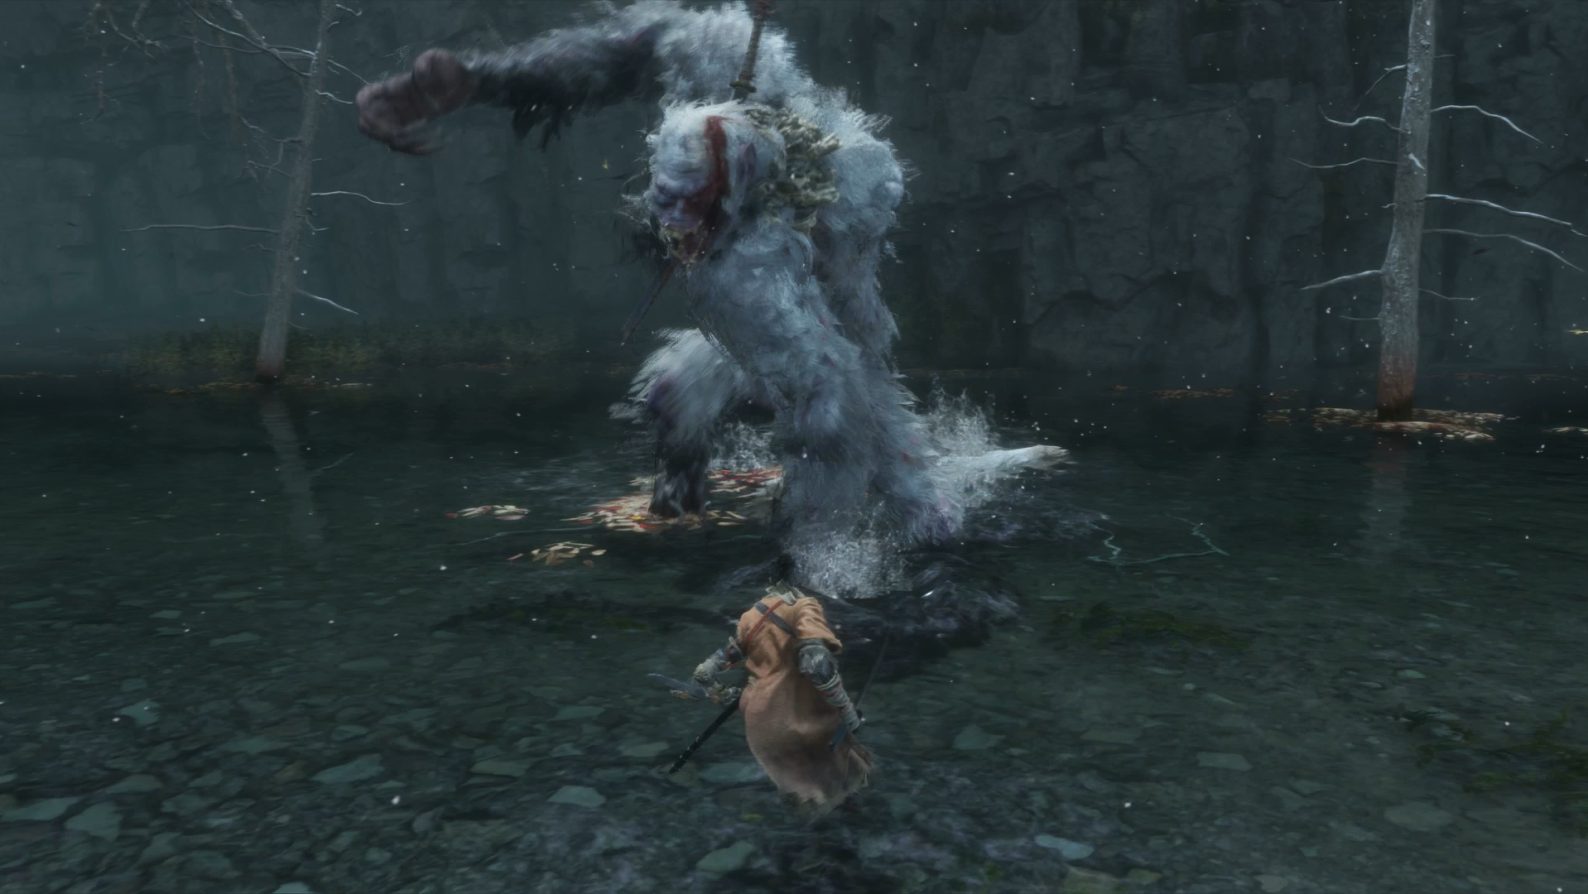 Sekiro's Smartest Boss Fight Is Against A Giant, Poop-Throwing Ape